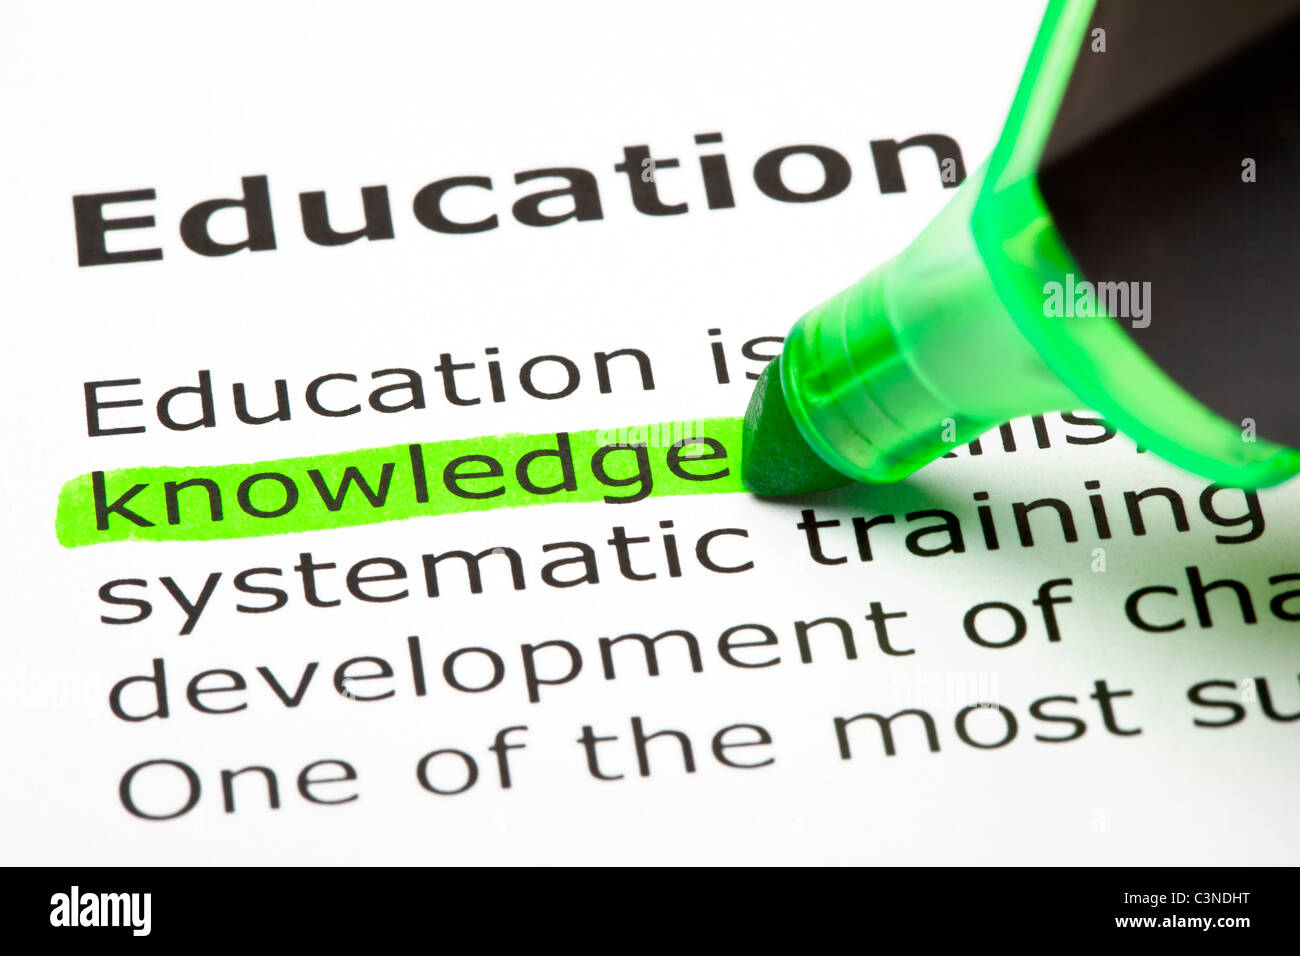 'Knowledge' highlighted in green, under the heading 'Education' - Stock Image